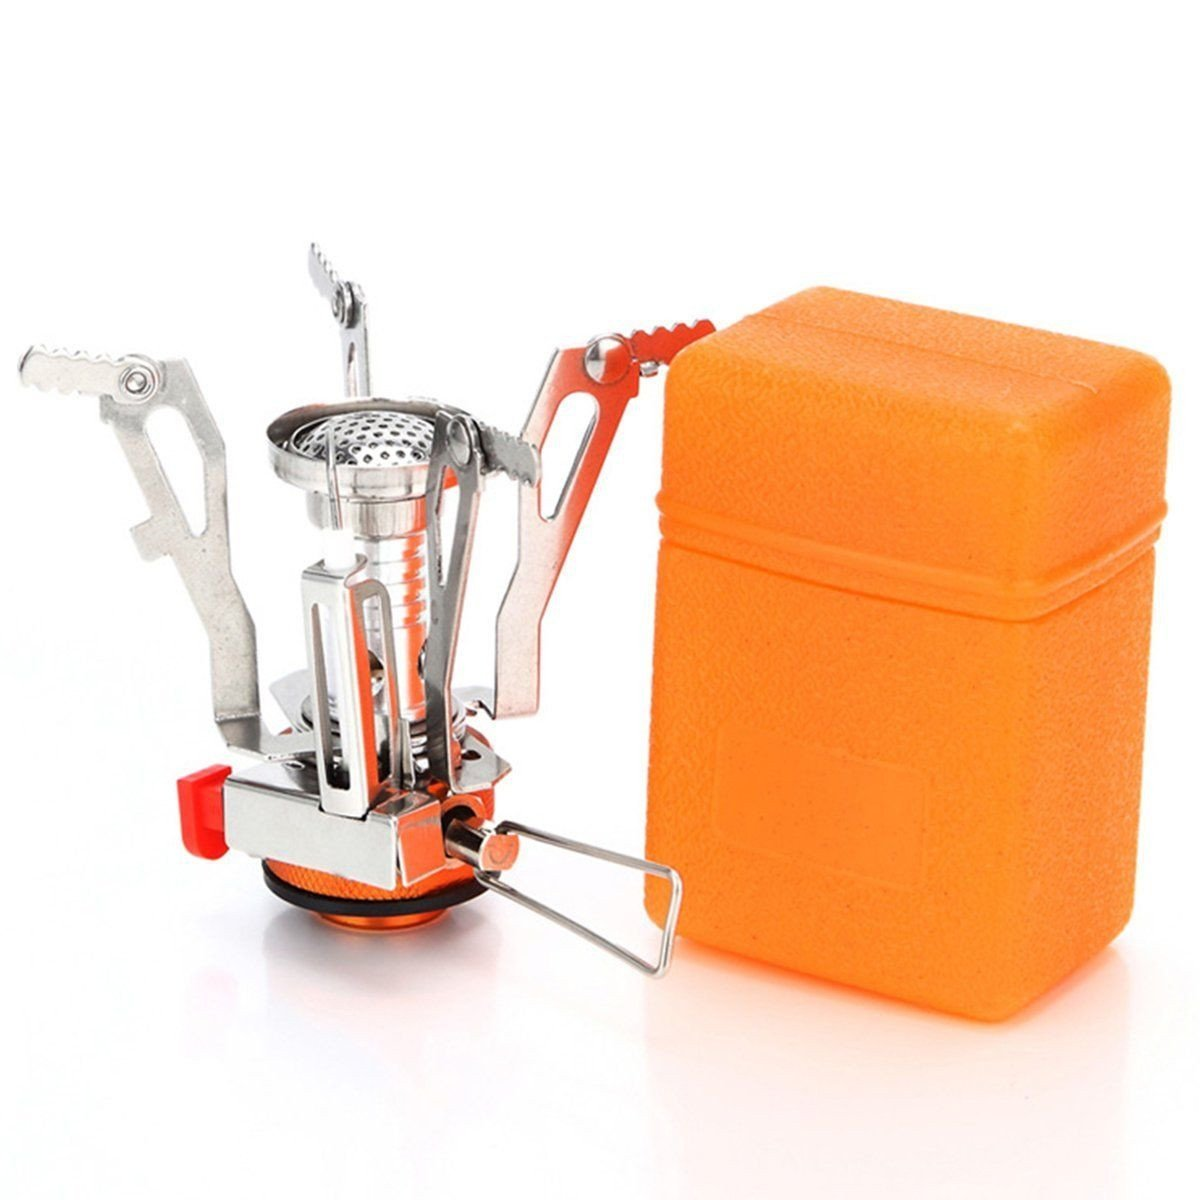 Ultralight Mini Camping Stove with Piezo Ignition For Outdoor Backpacking